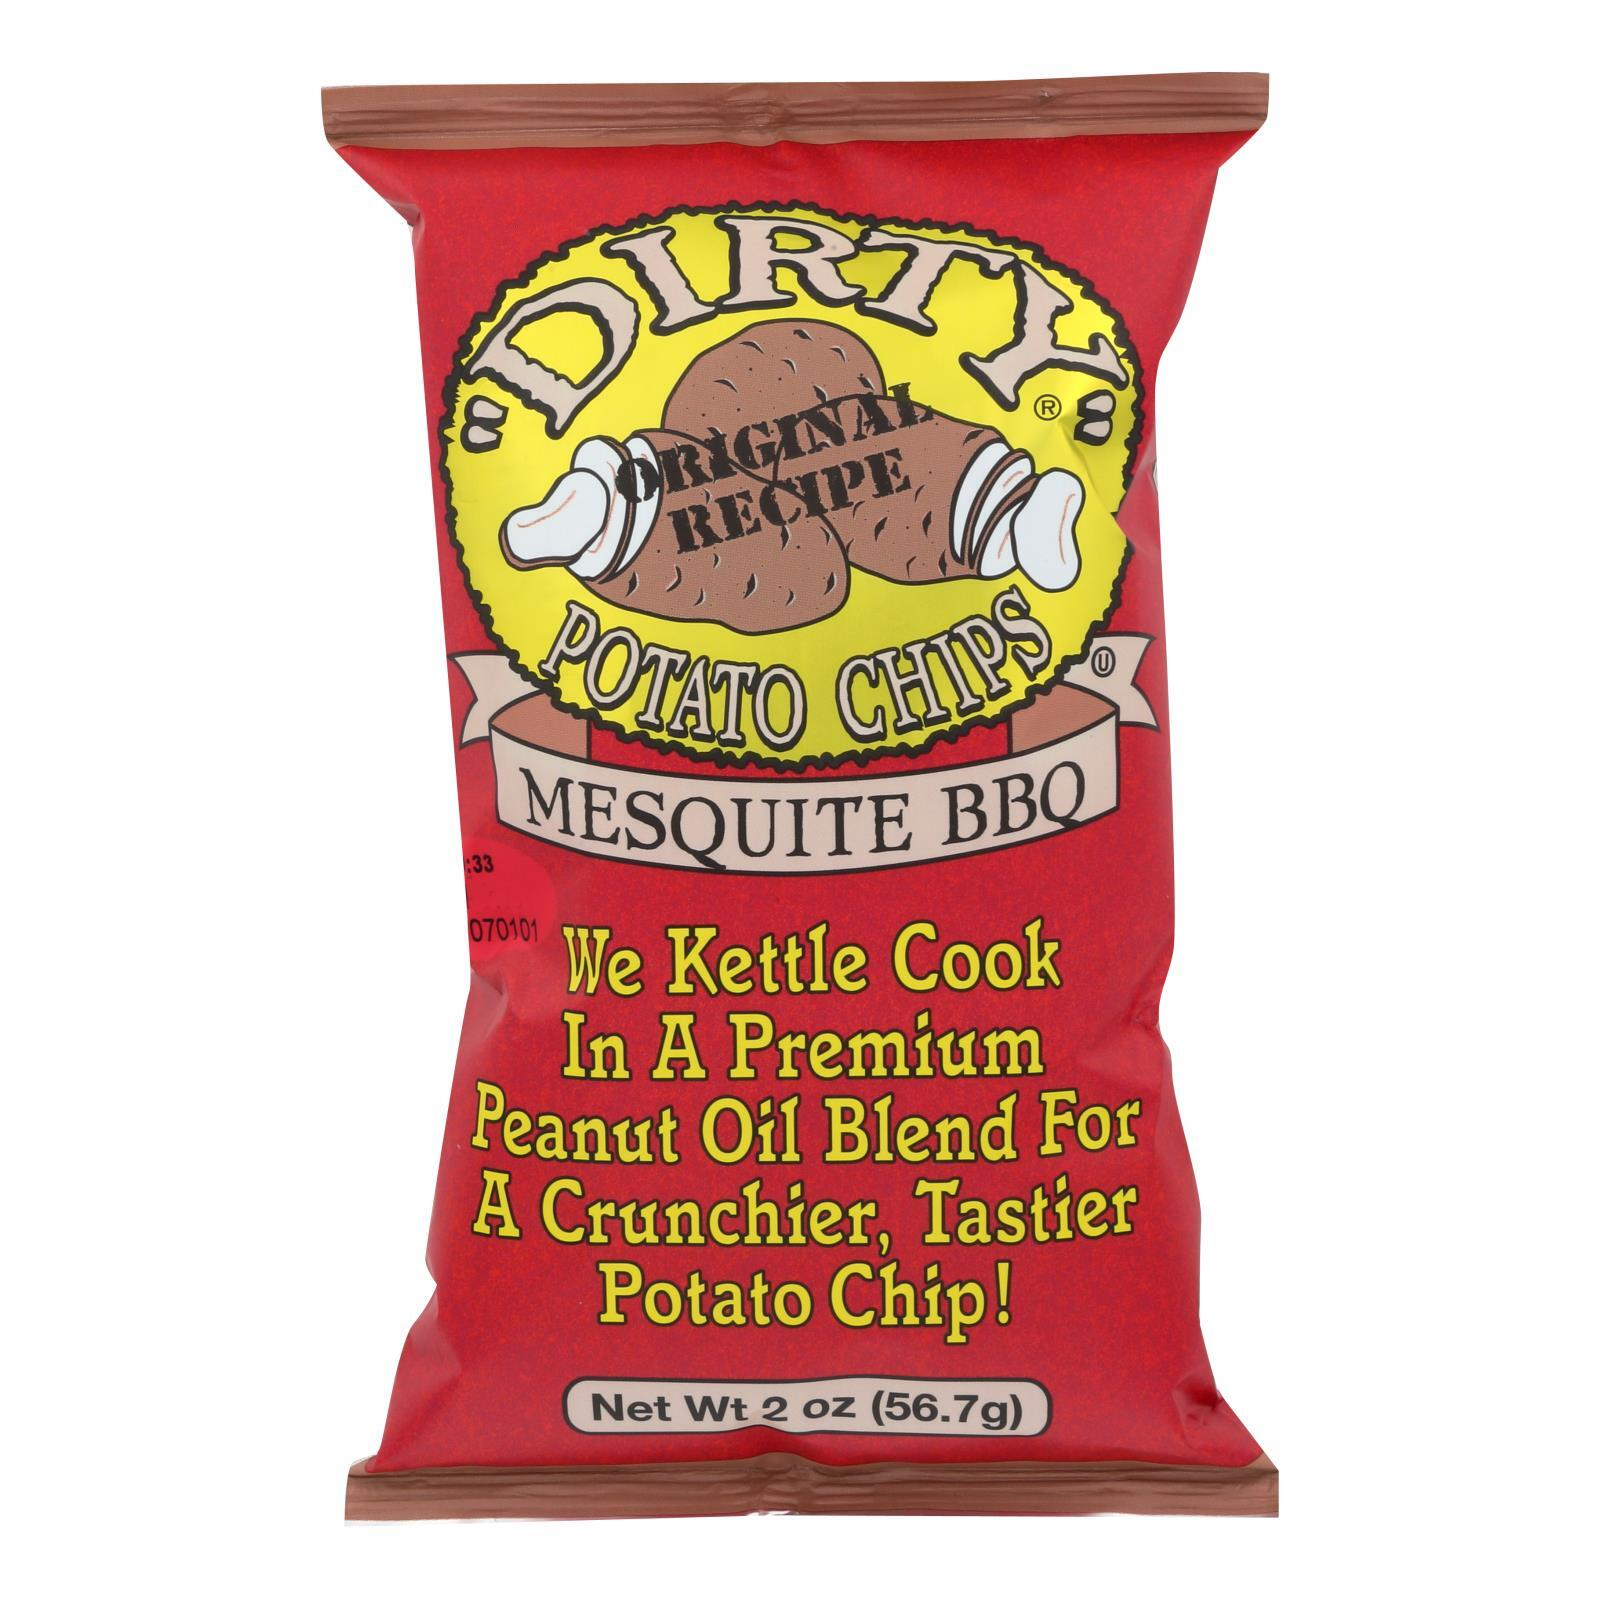 Dirty Chips Potato Chips - Mesquite BBQ - 2 oz - case of 25